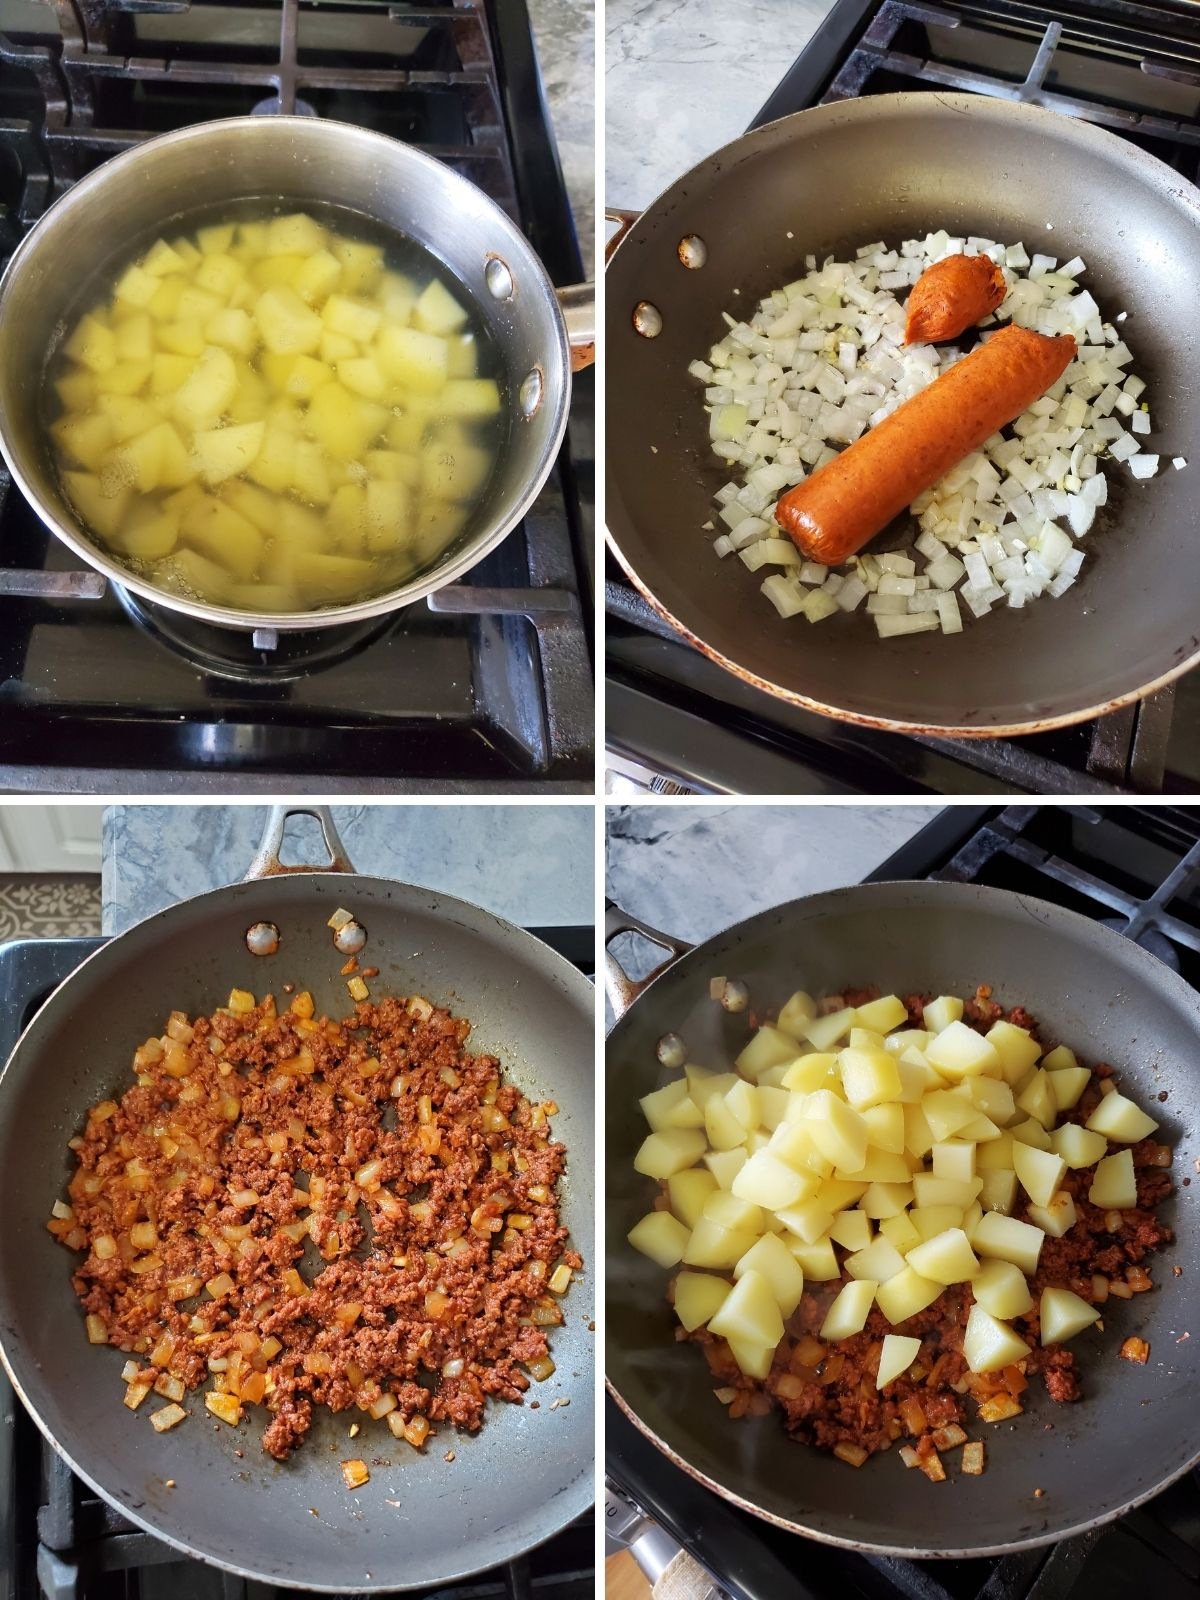 4 pictures, each of the cooking process